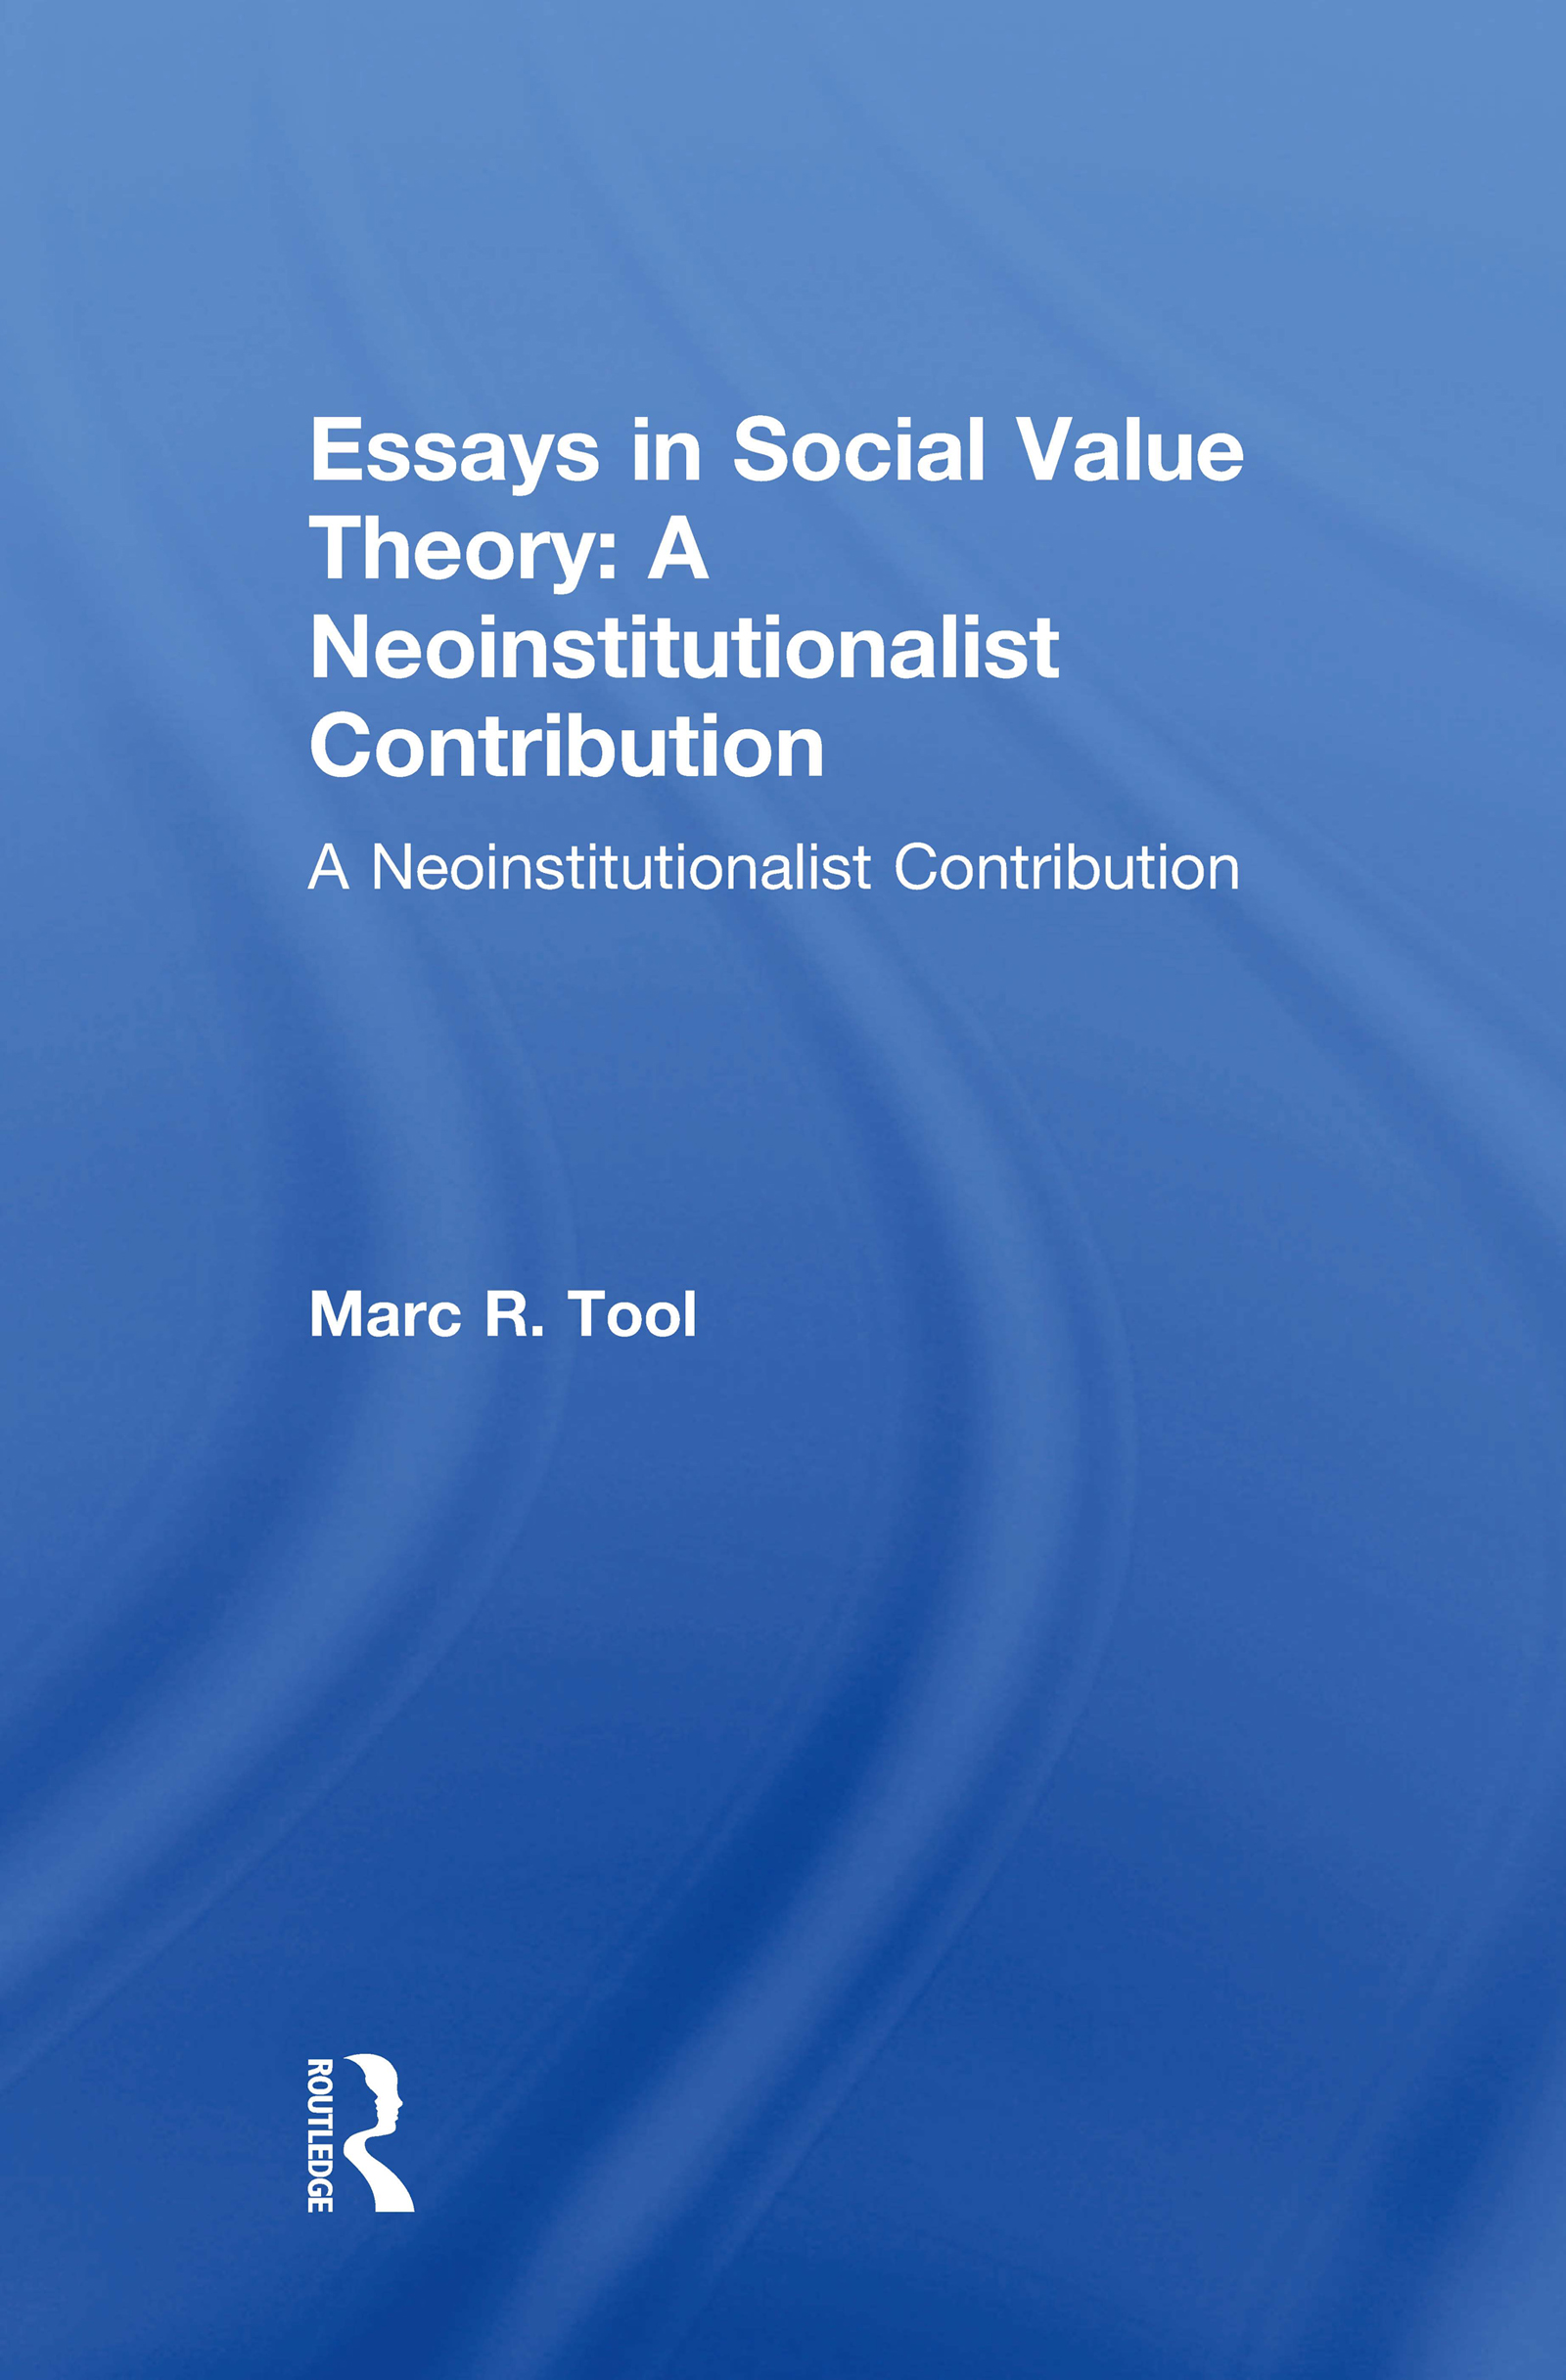 Essays in Social Value Theory: A Neoinstitutionalist Contribution: A Neoinstitutionalist Contribution book cover